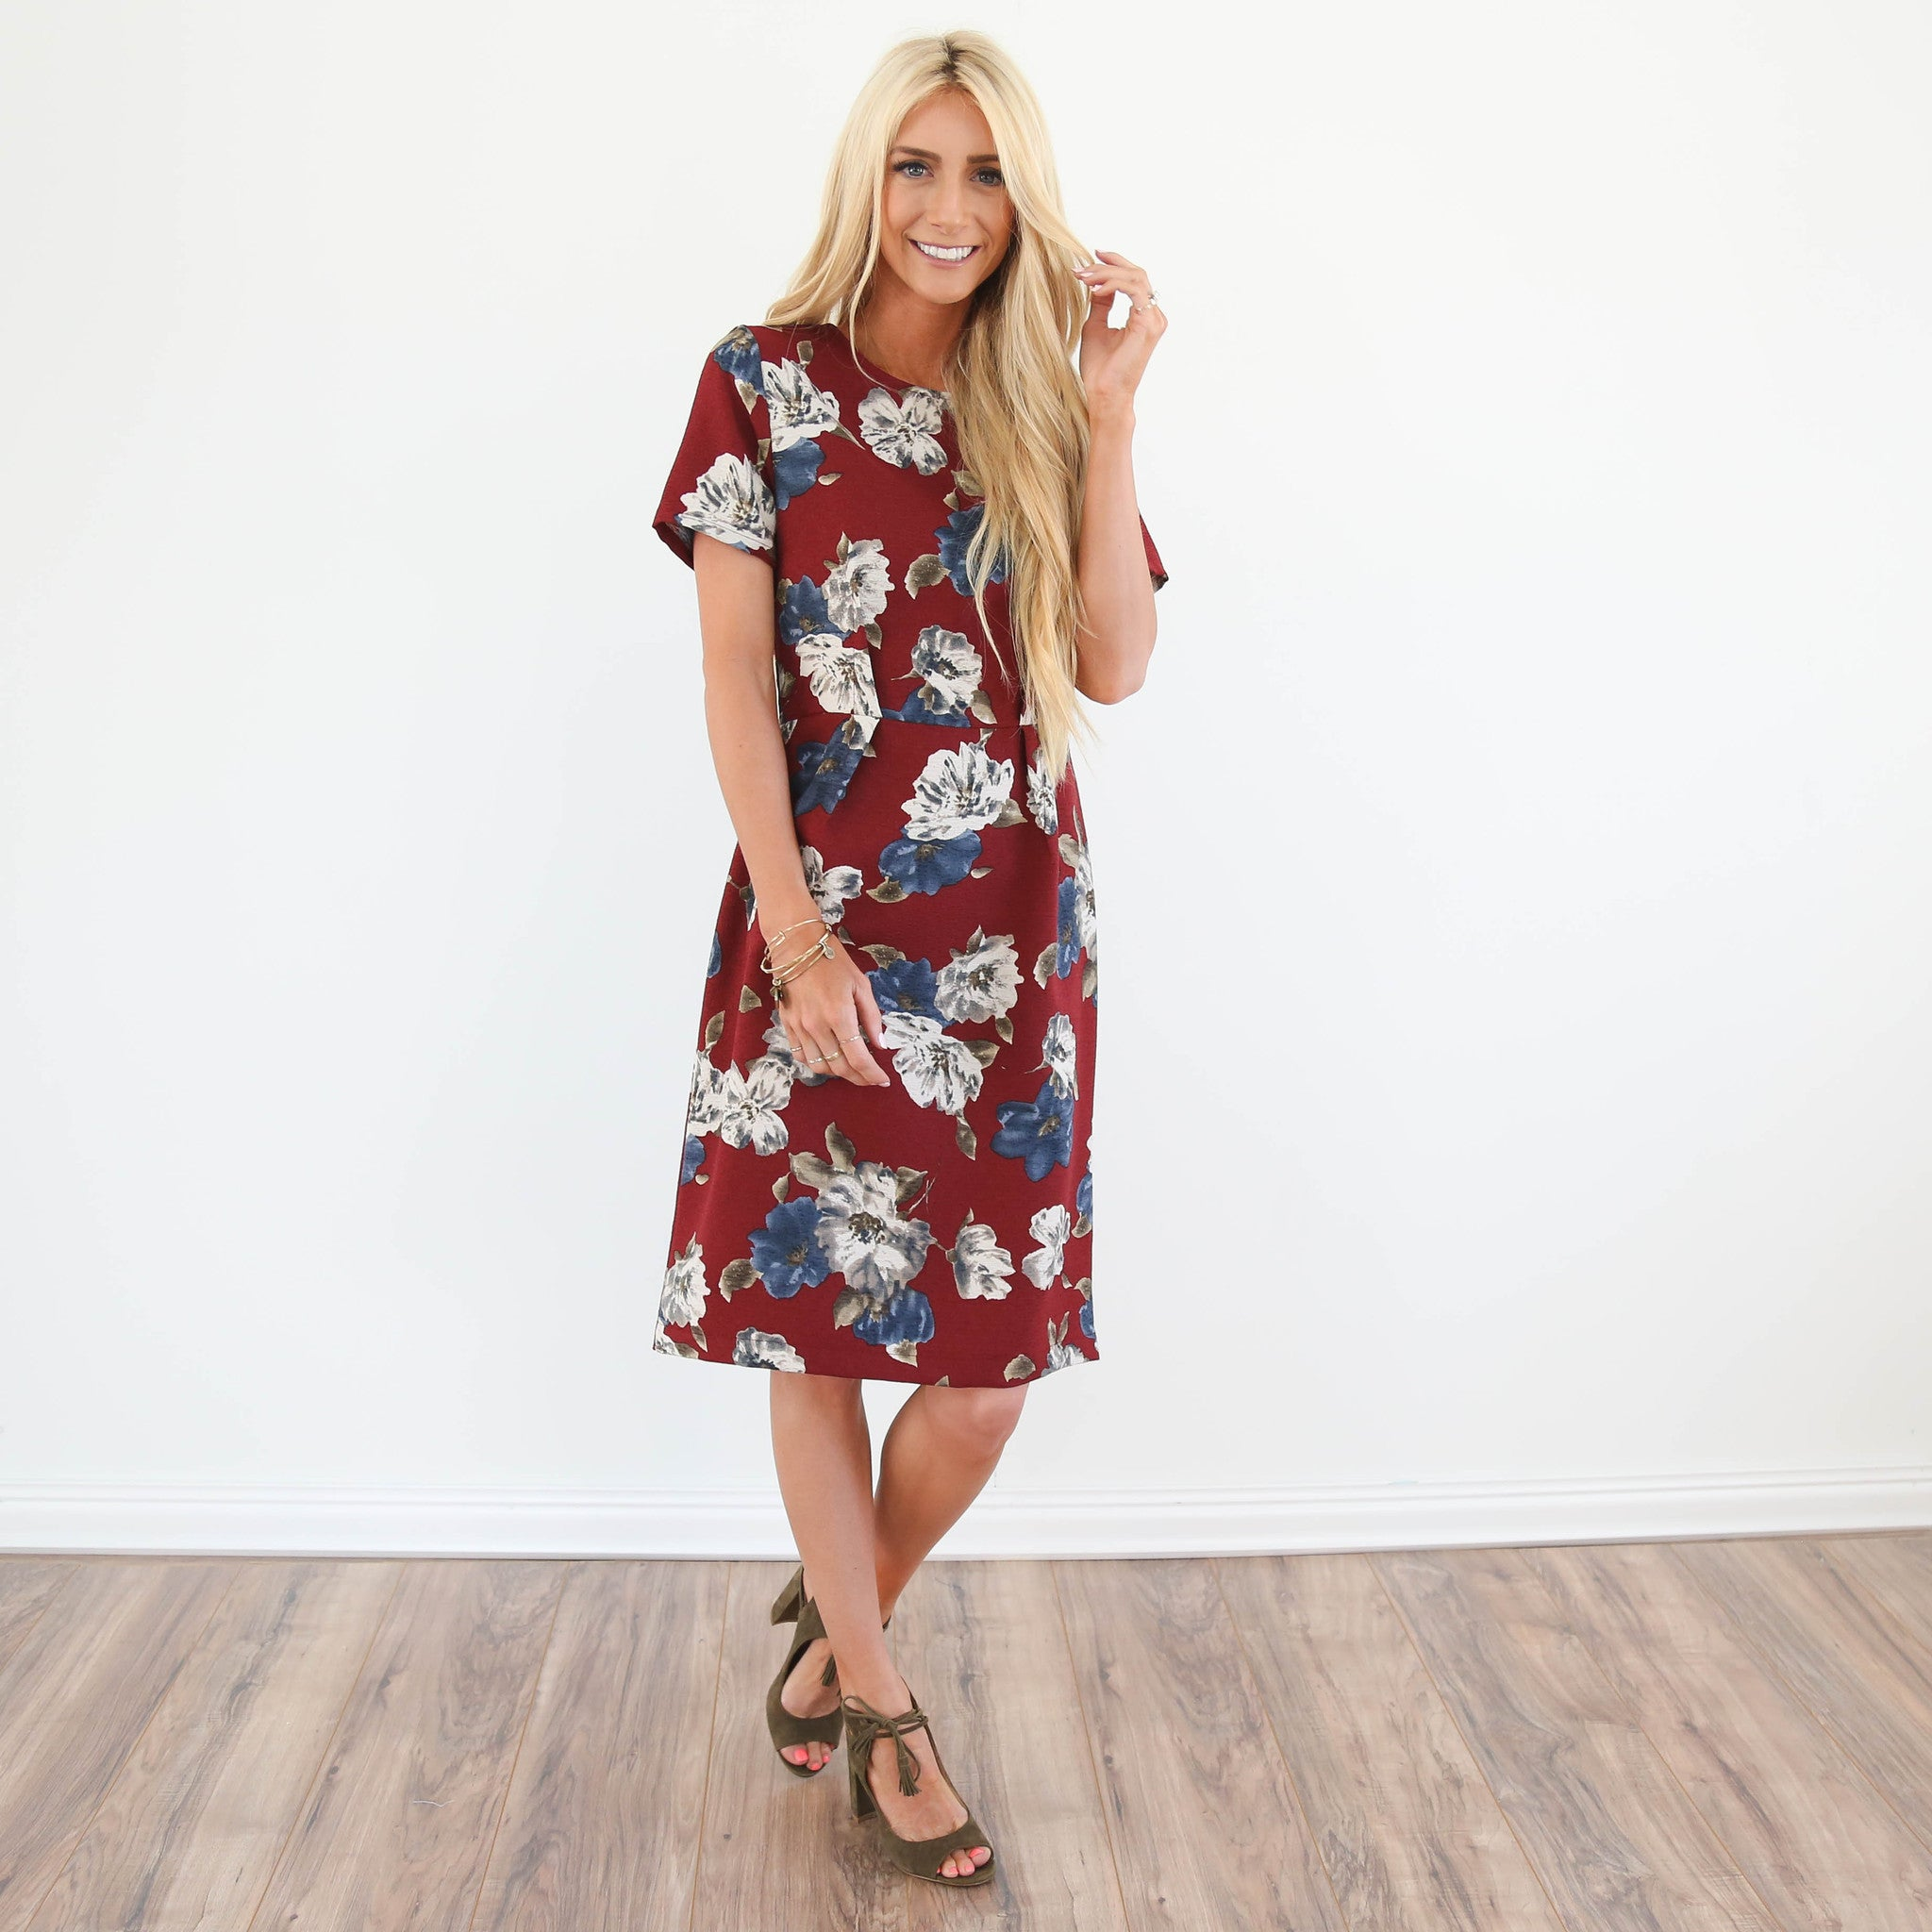 S & Co. Georgia Floral Dress